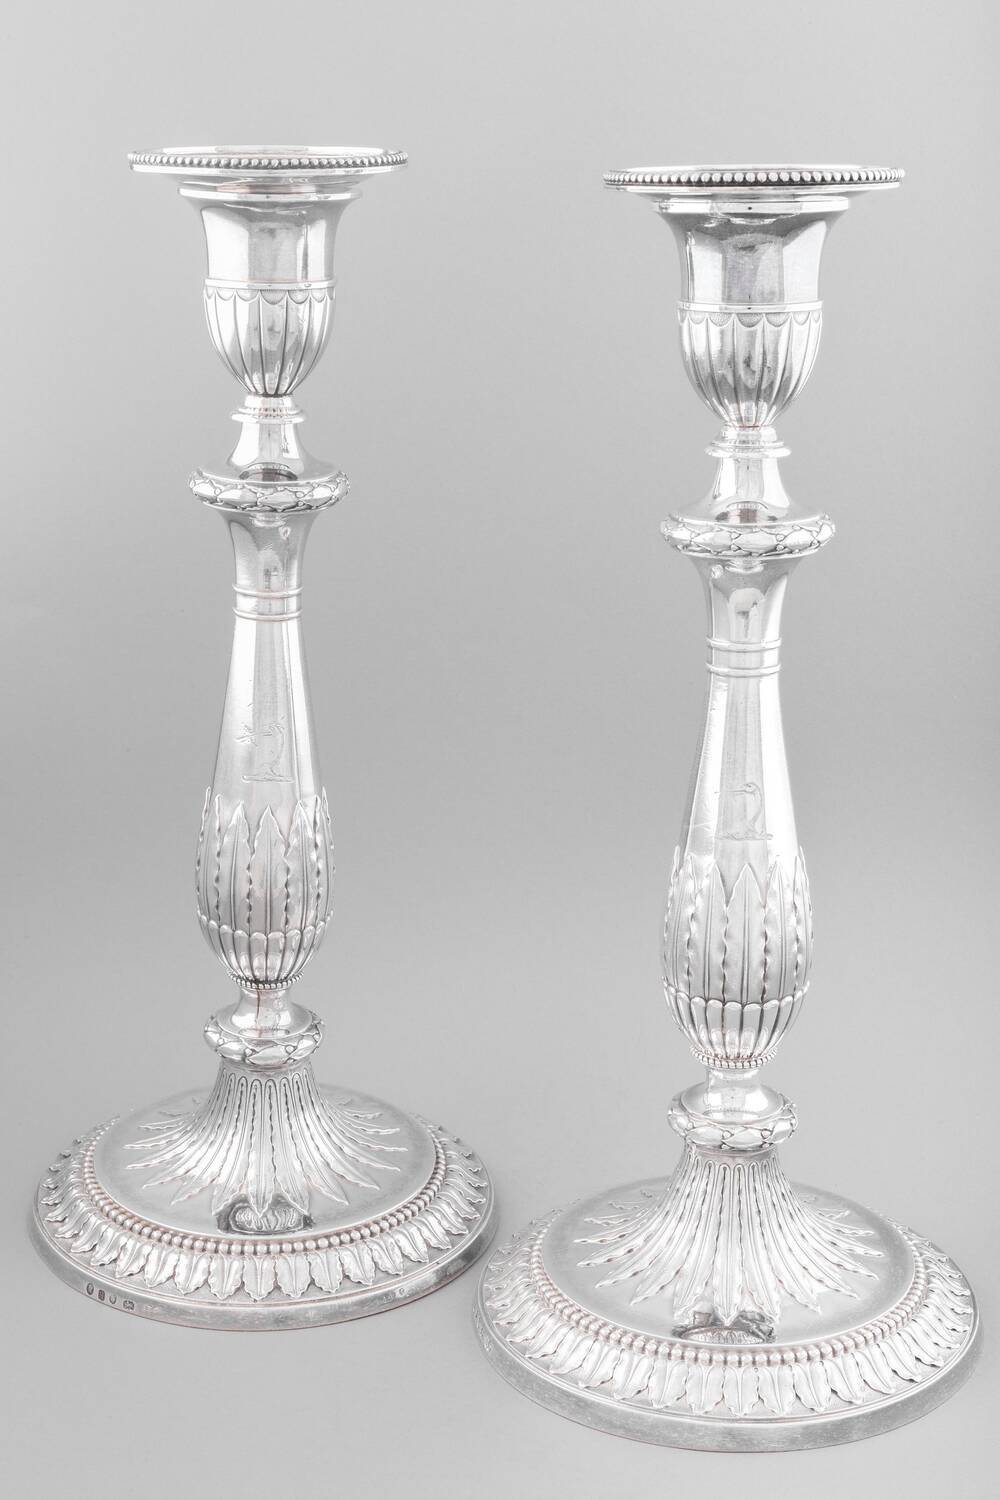 A pair of ornately carved silver candlesticks are displayed against a plain grey background.